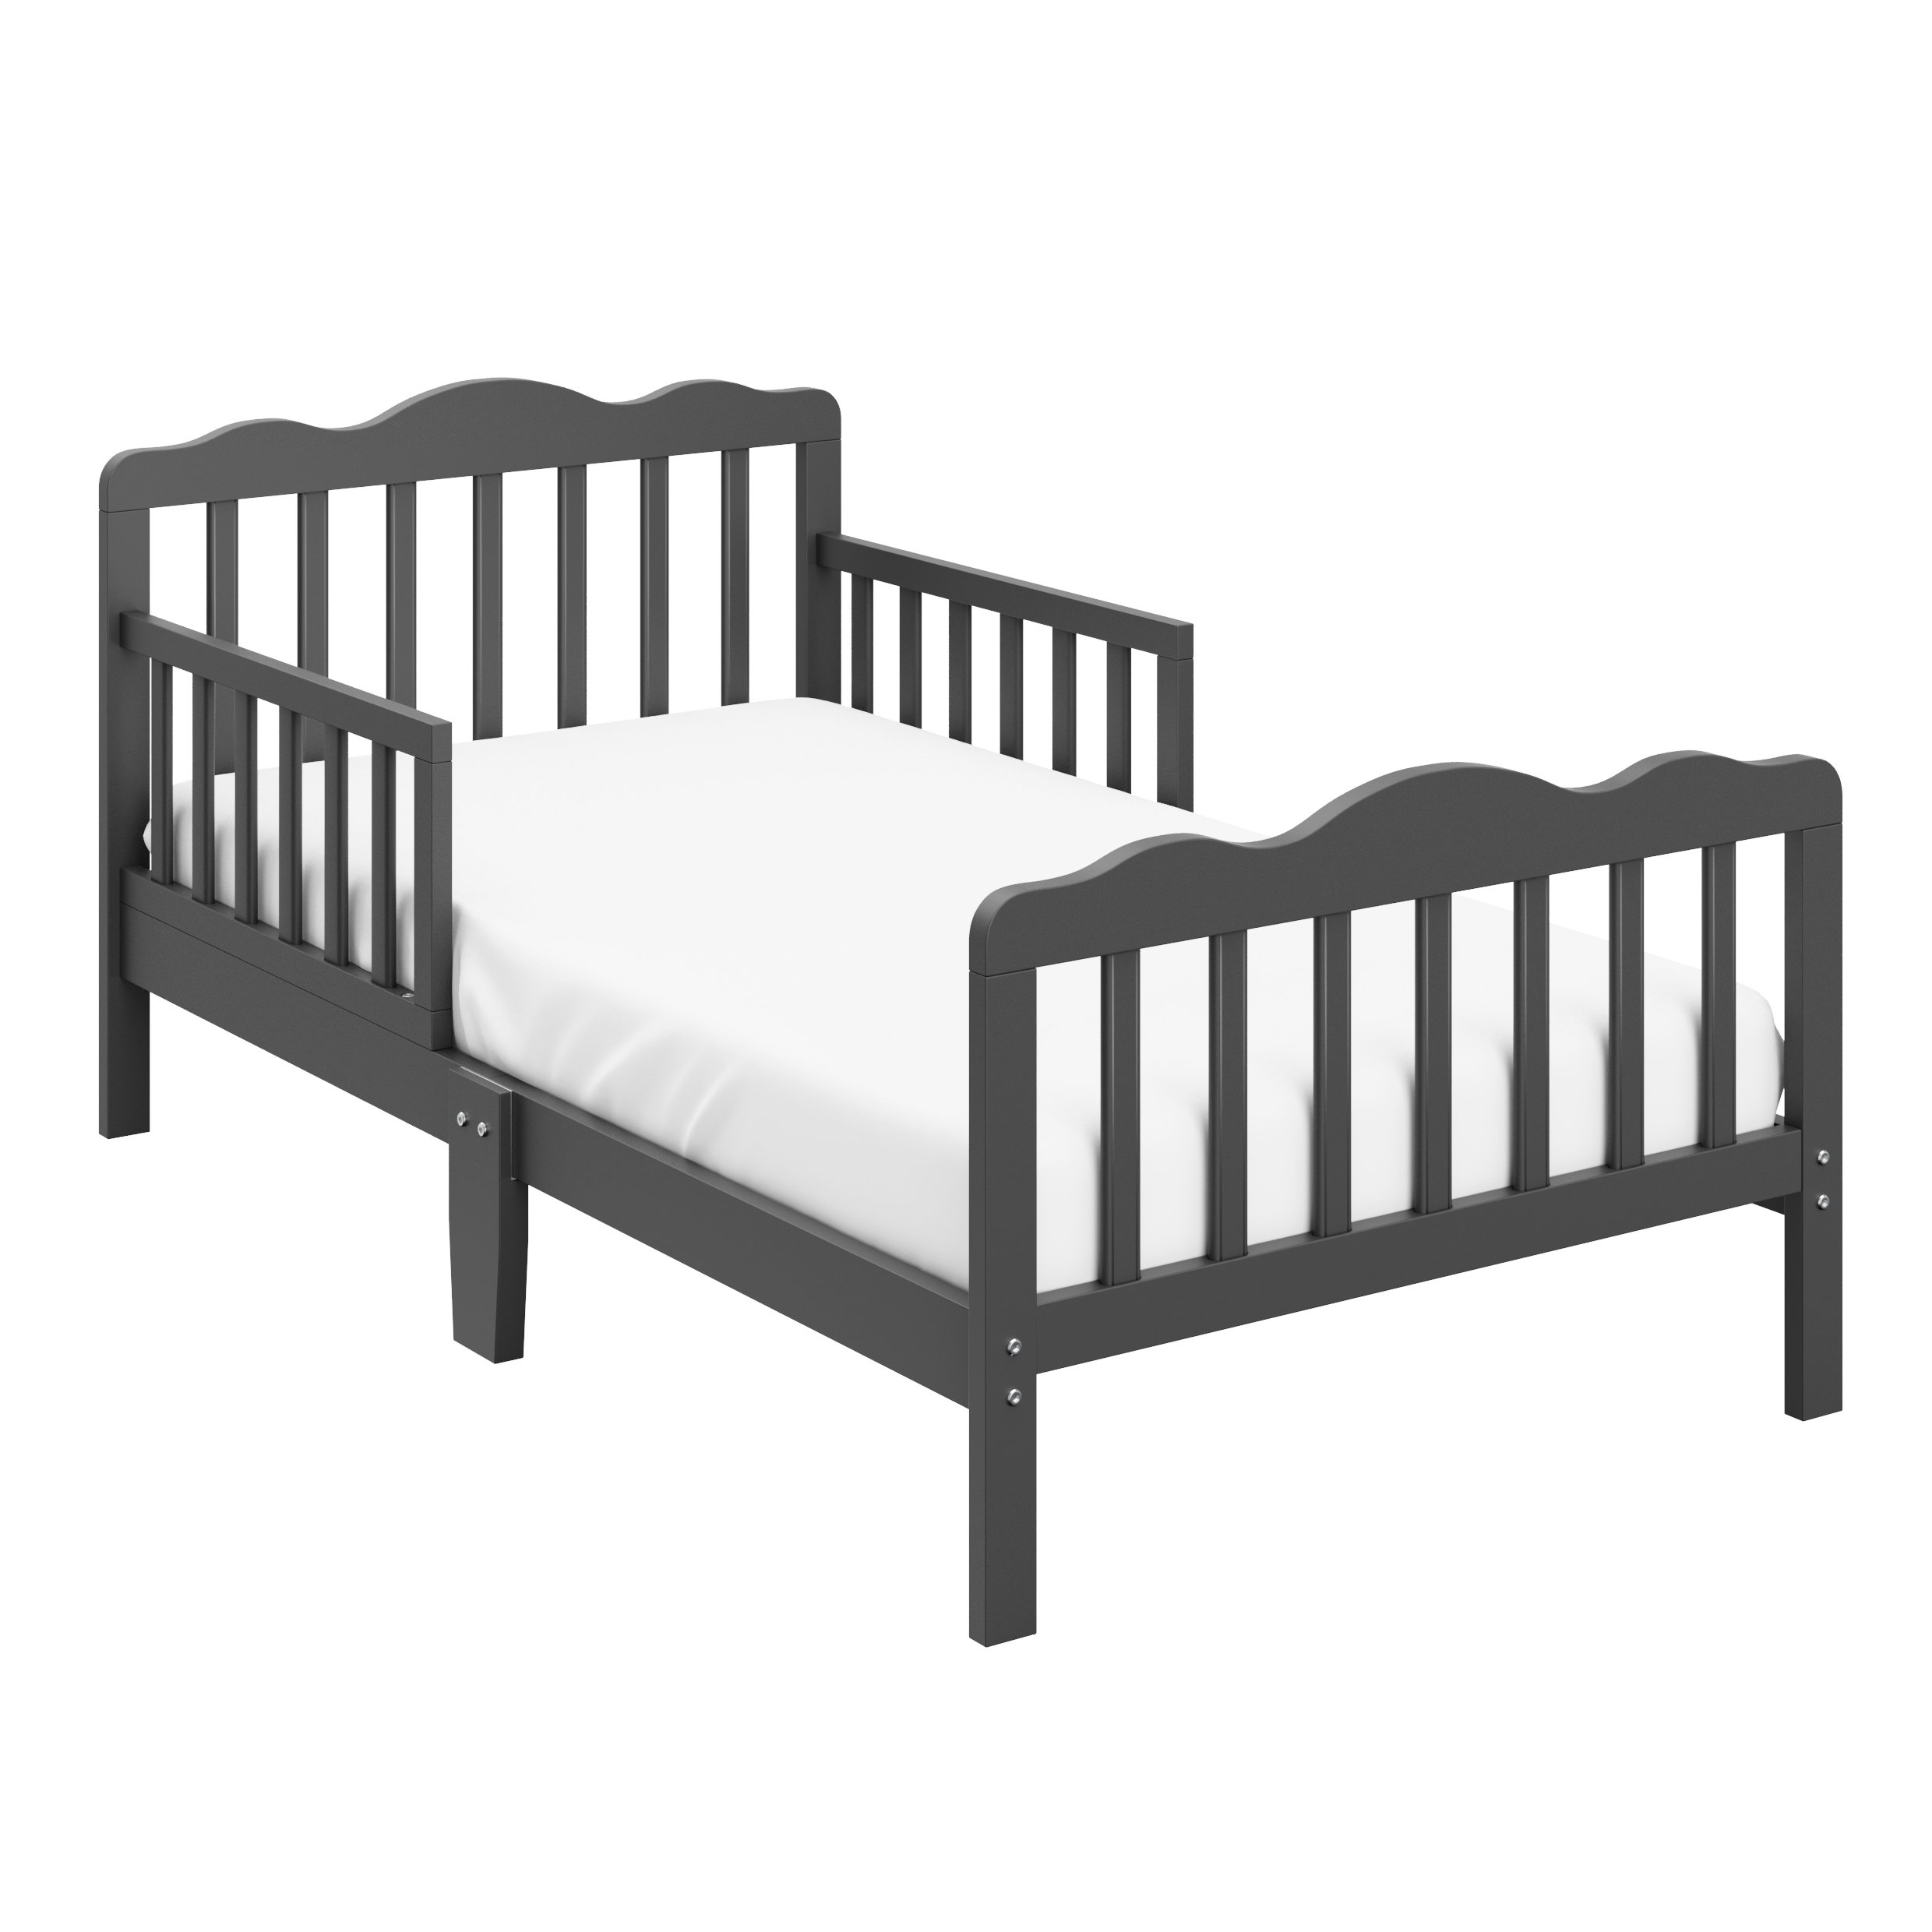 Storkcraft Hillside Toddler Bed Gray, Fits Standard-Size Toddler Mattress (Not Included), Guardrails on Both Sides, Meets or Exceeds All Federal Safety Standards, Pine & Composite Construction by Stork Craft